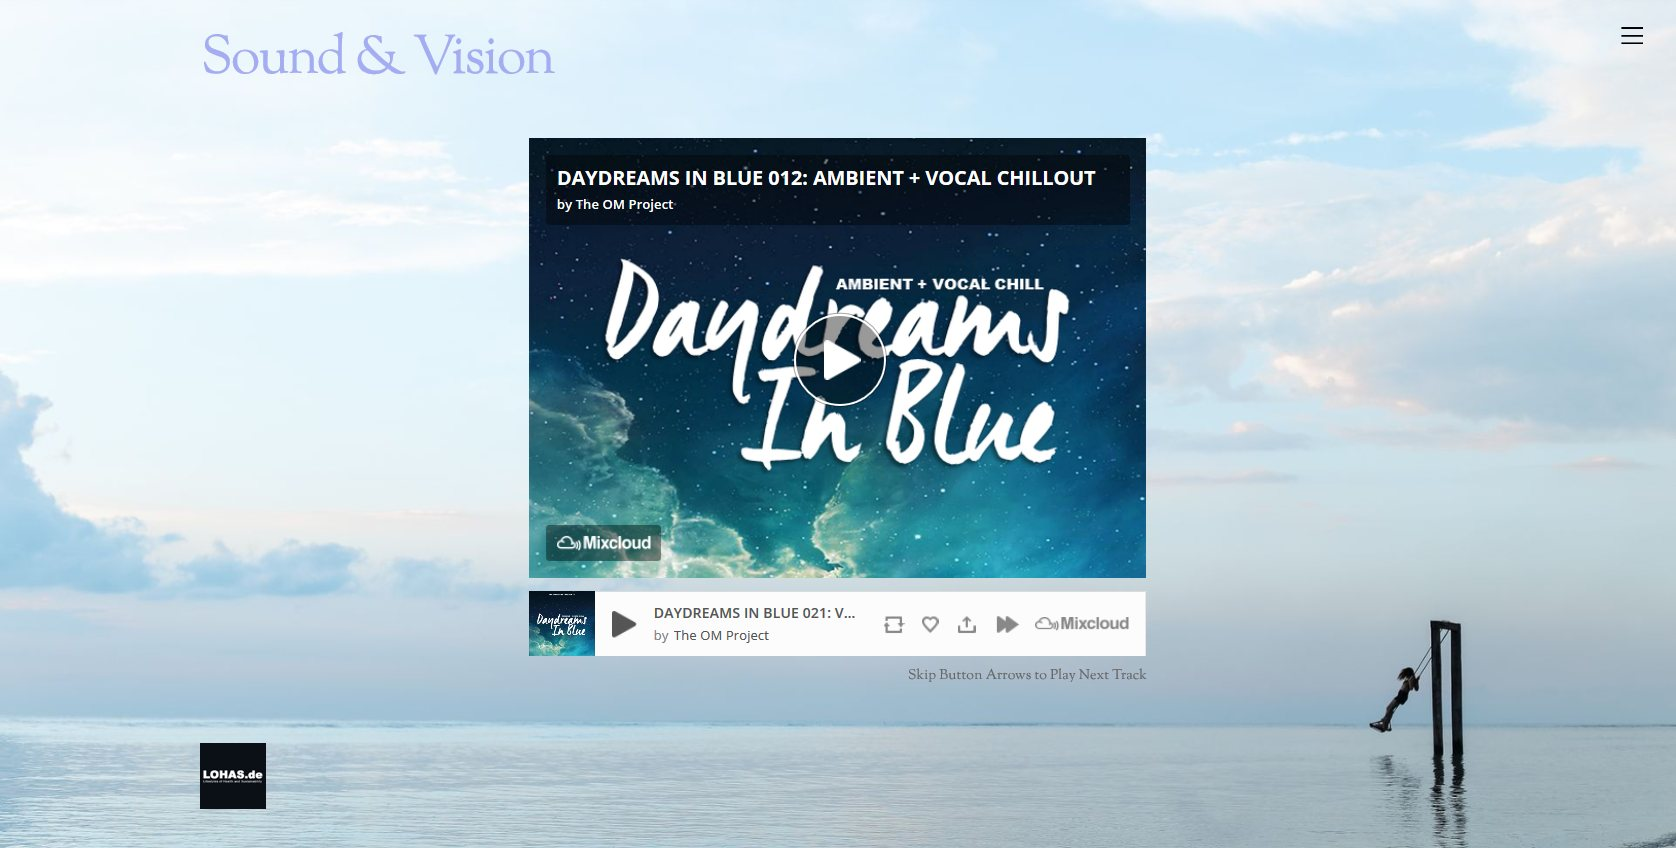 OM_Project Daydream